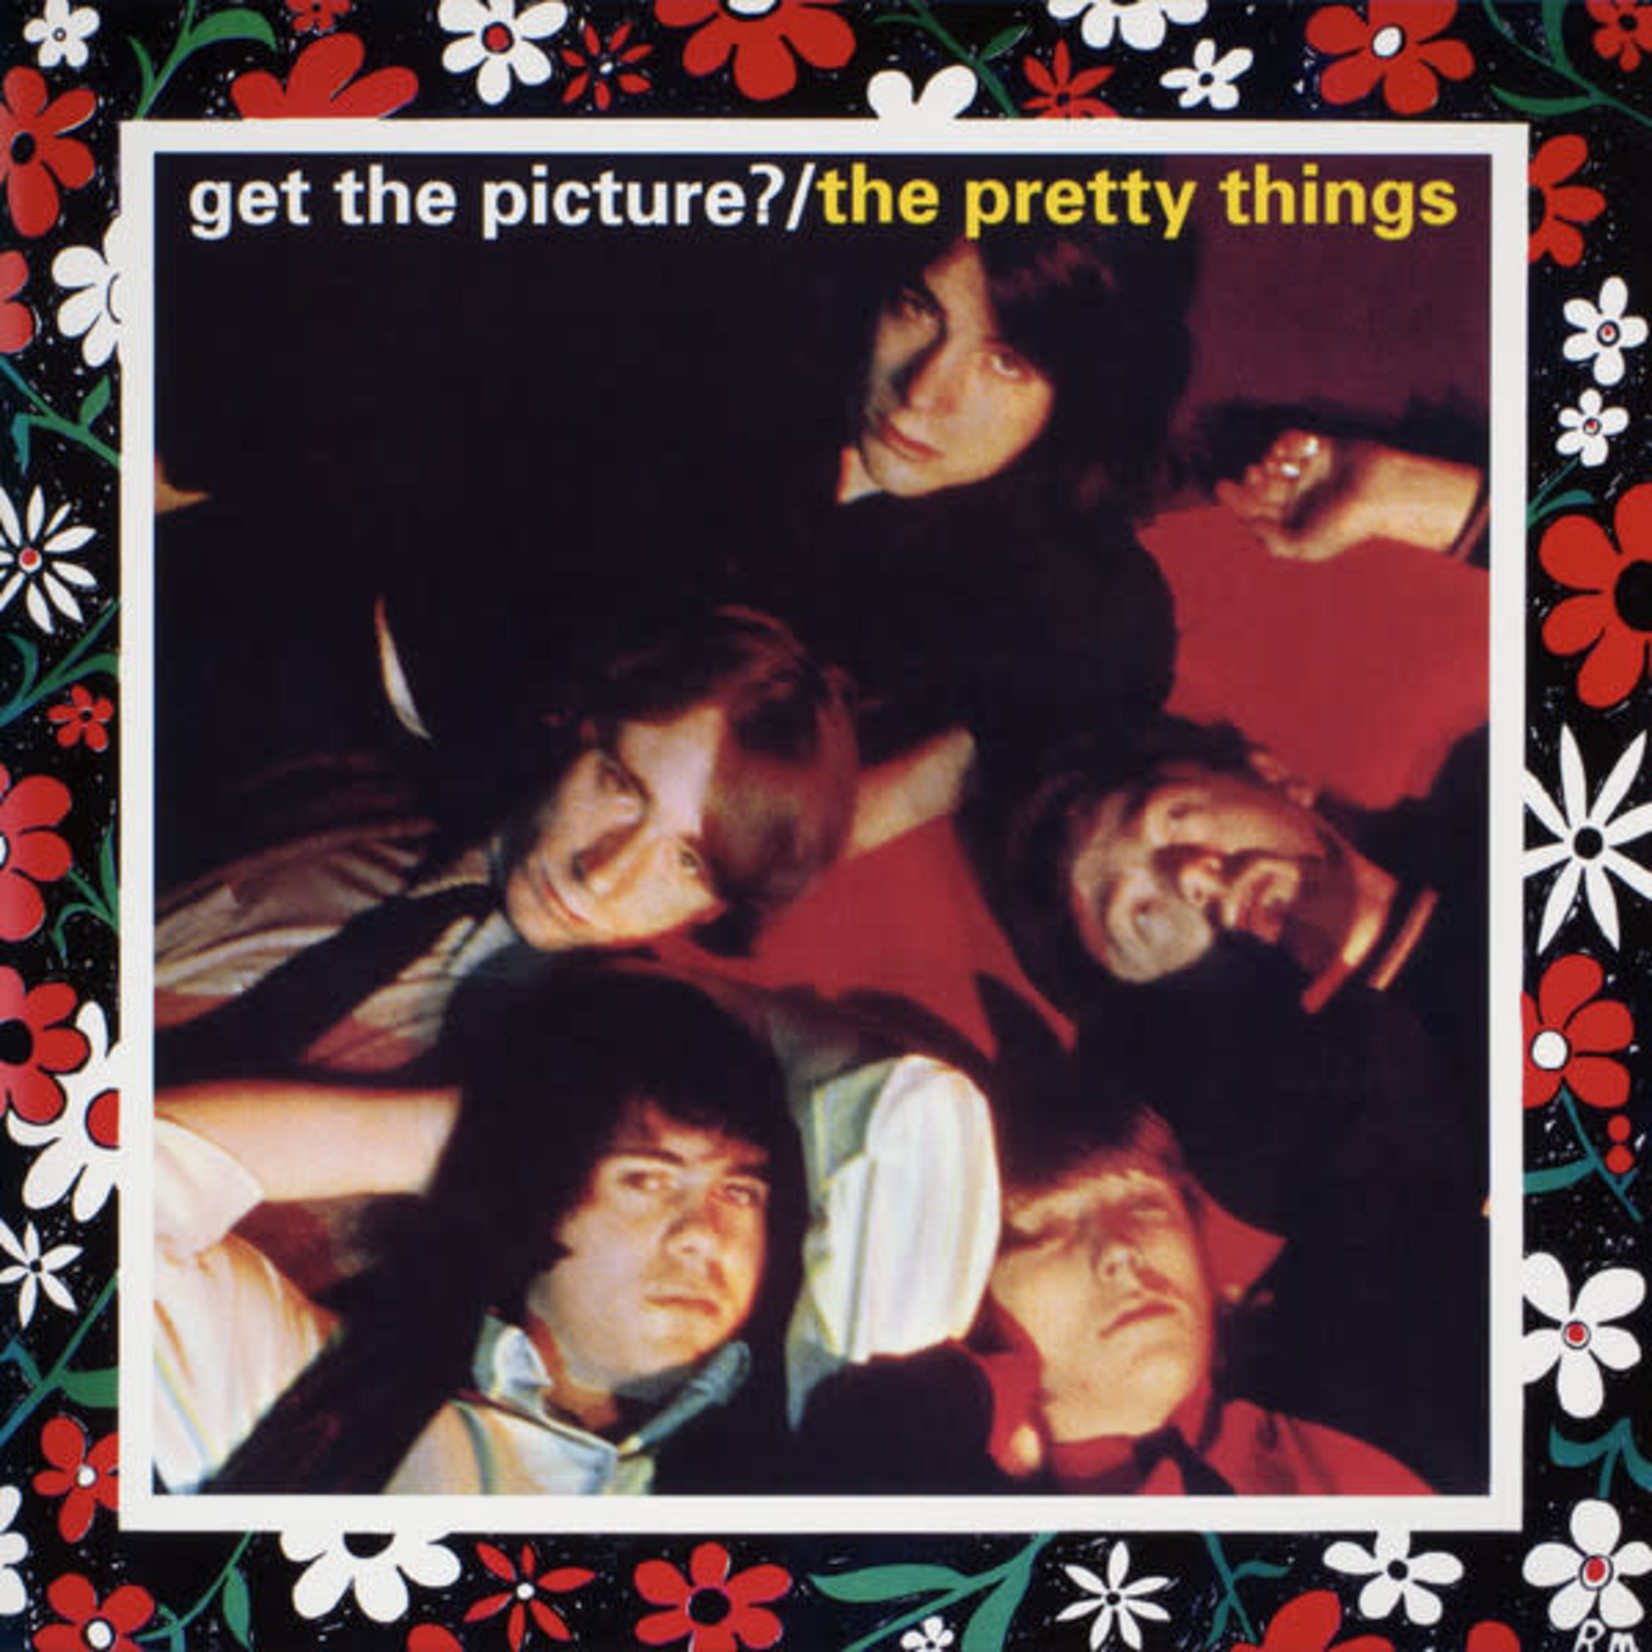 The Pretty Things The Pretty Things - Get The Picture?